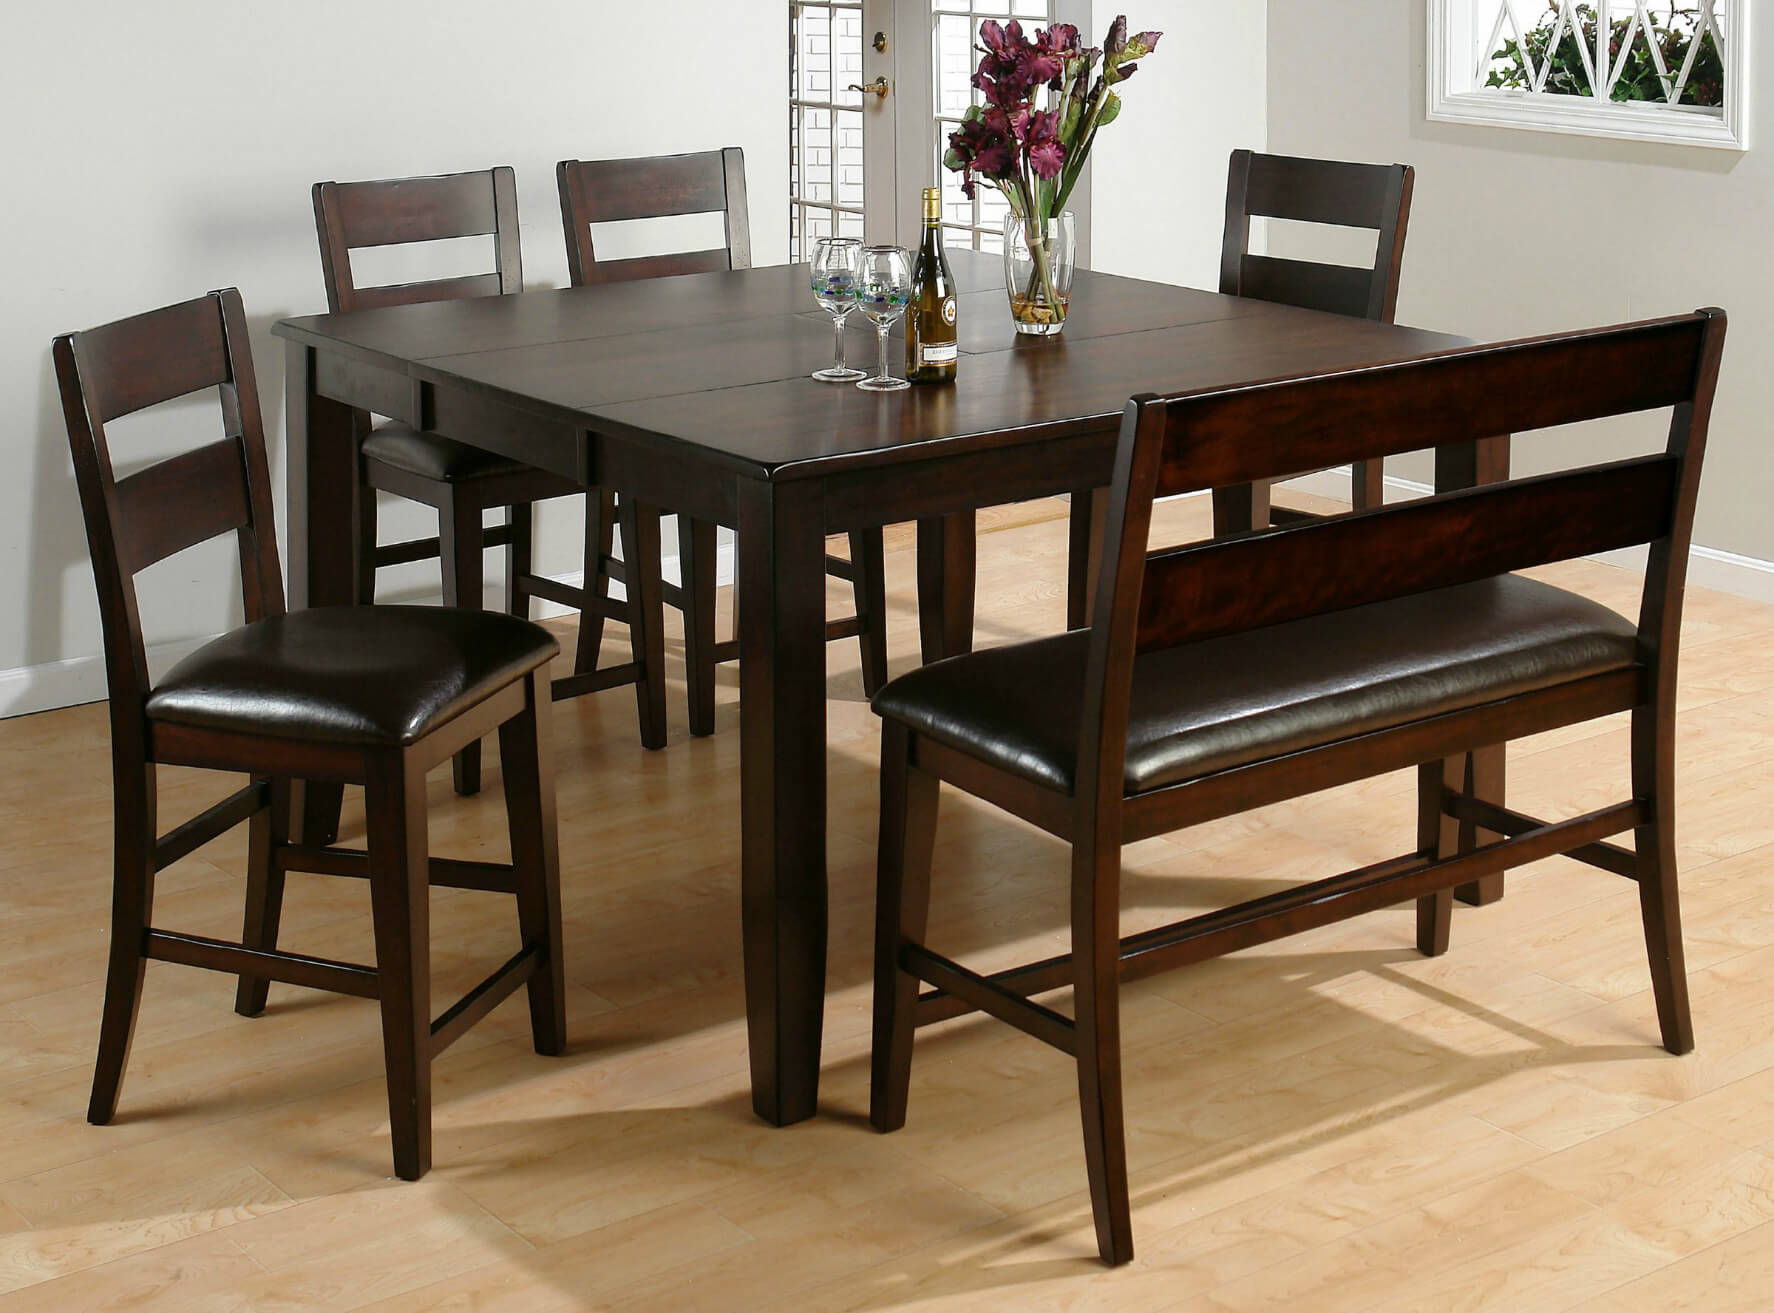 26 Big & Small Dining Room Sets With Bench Seating. Teacher Desk Ideas. Life Web Desk. 27 Microwave Drawer. Massage Desk Chair. Crib Drawer. Small Office Table. Round Dining Table With Leaves. Clamping Table